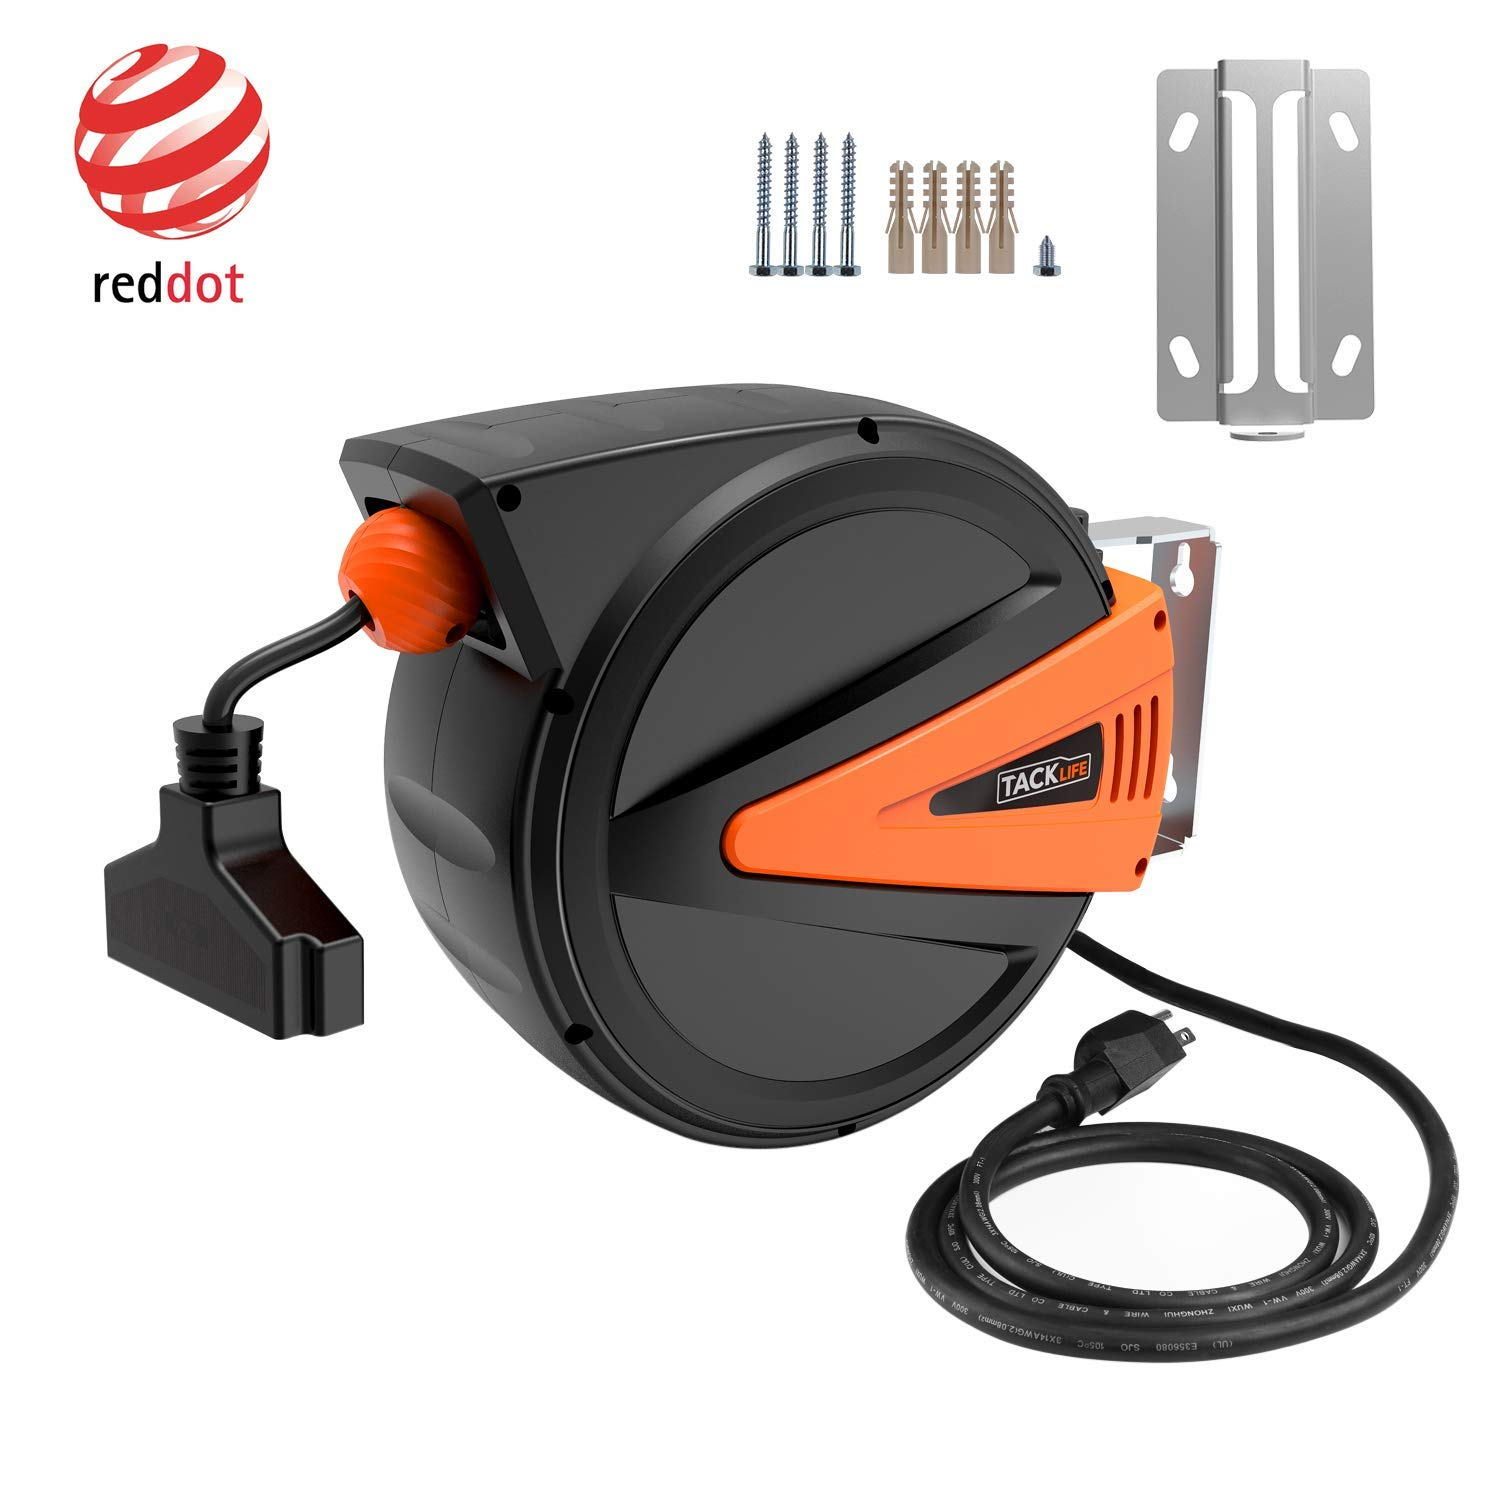 Retractable Extension Cord Reel, TACKLIFE 50+4.5FT Cord Reel, 14AWG, 3C SJTOW. 2 In 1 Mountable & Portable Power Cord Reel with 3 Electrical Outlets, 180° Swivel Mounting Bracket+Adjustable Stopper.